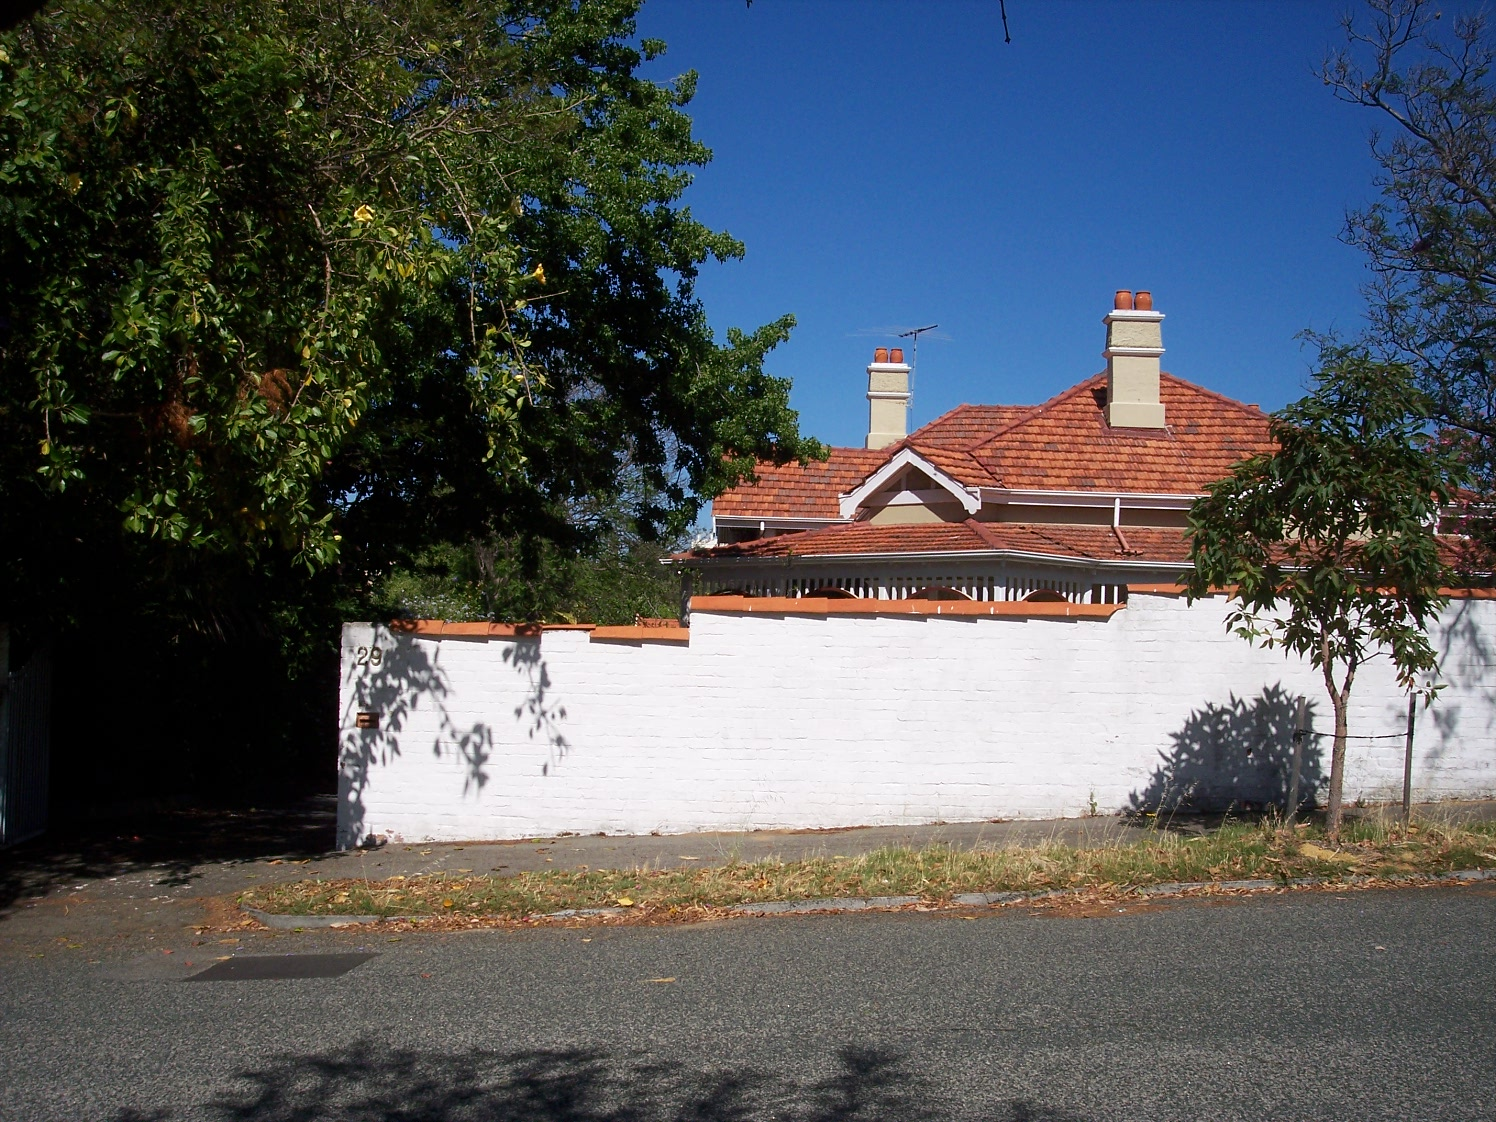 13-12-06 View W 29 Alexandra Road.jpg